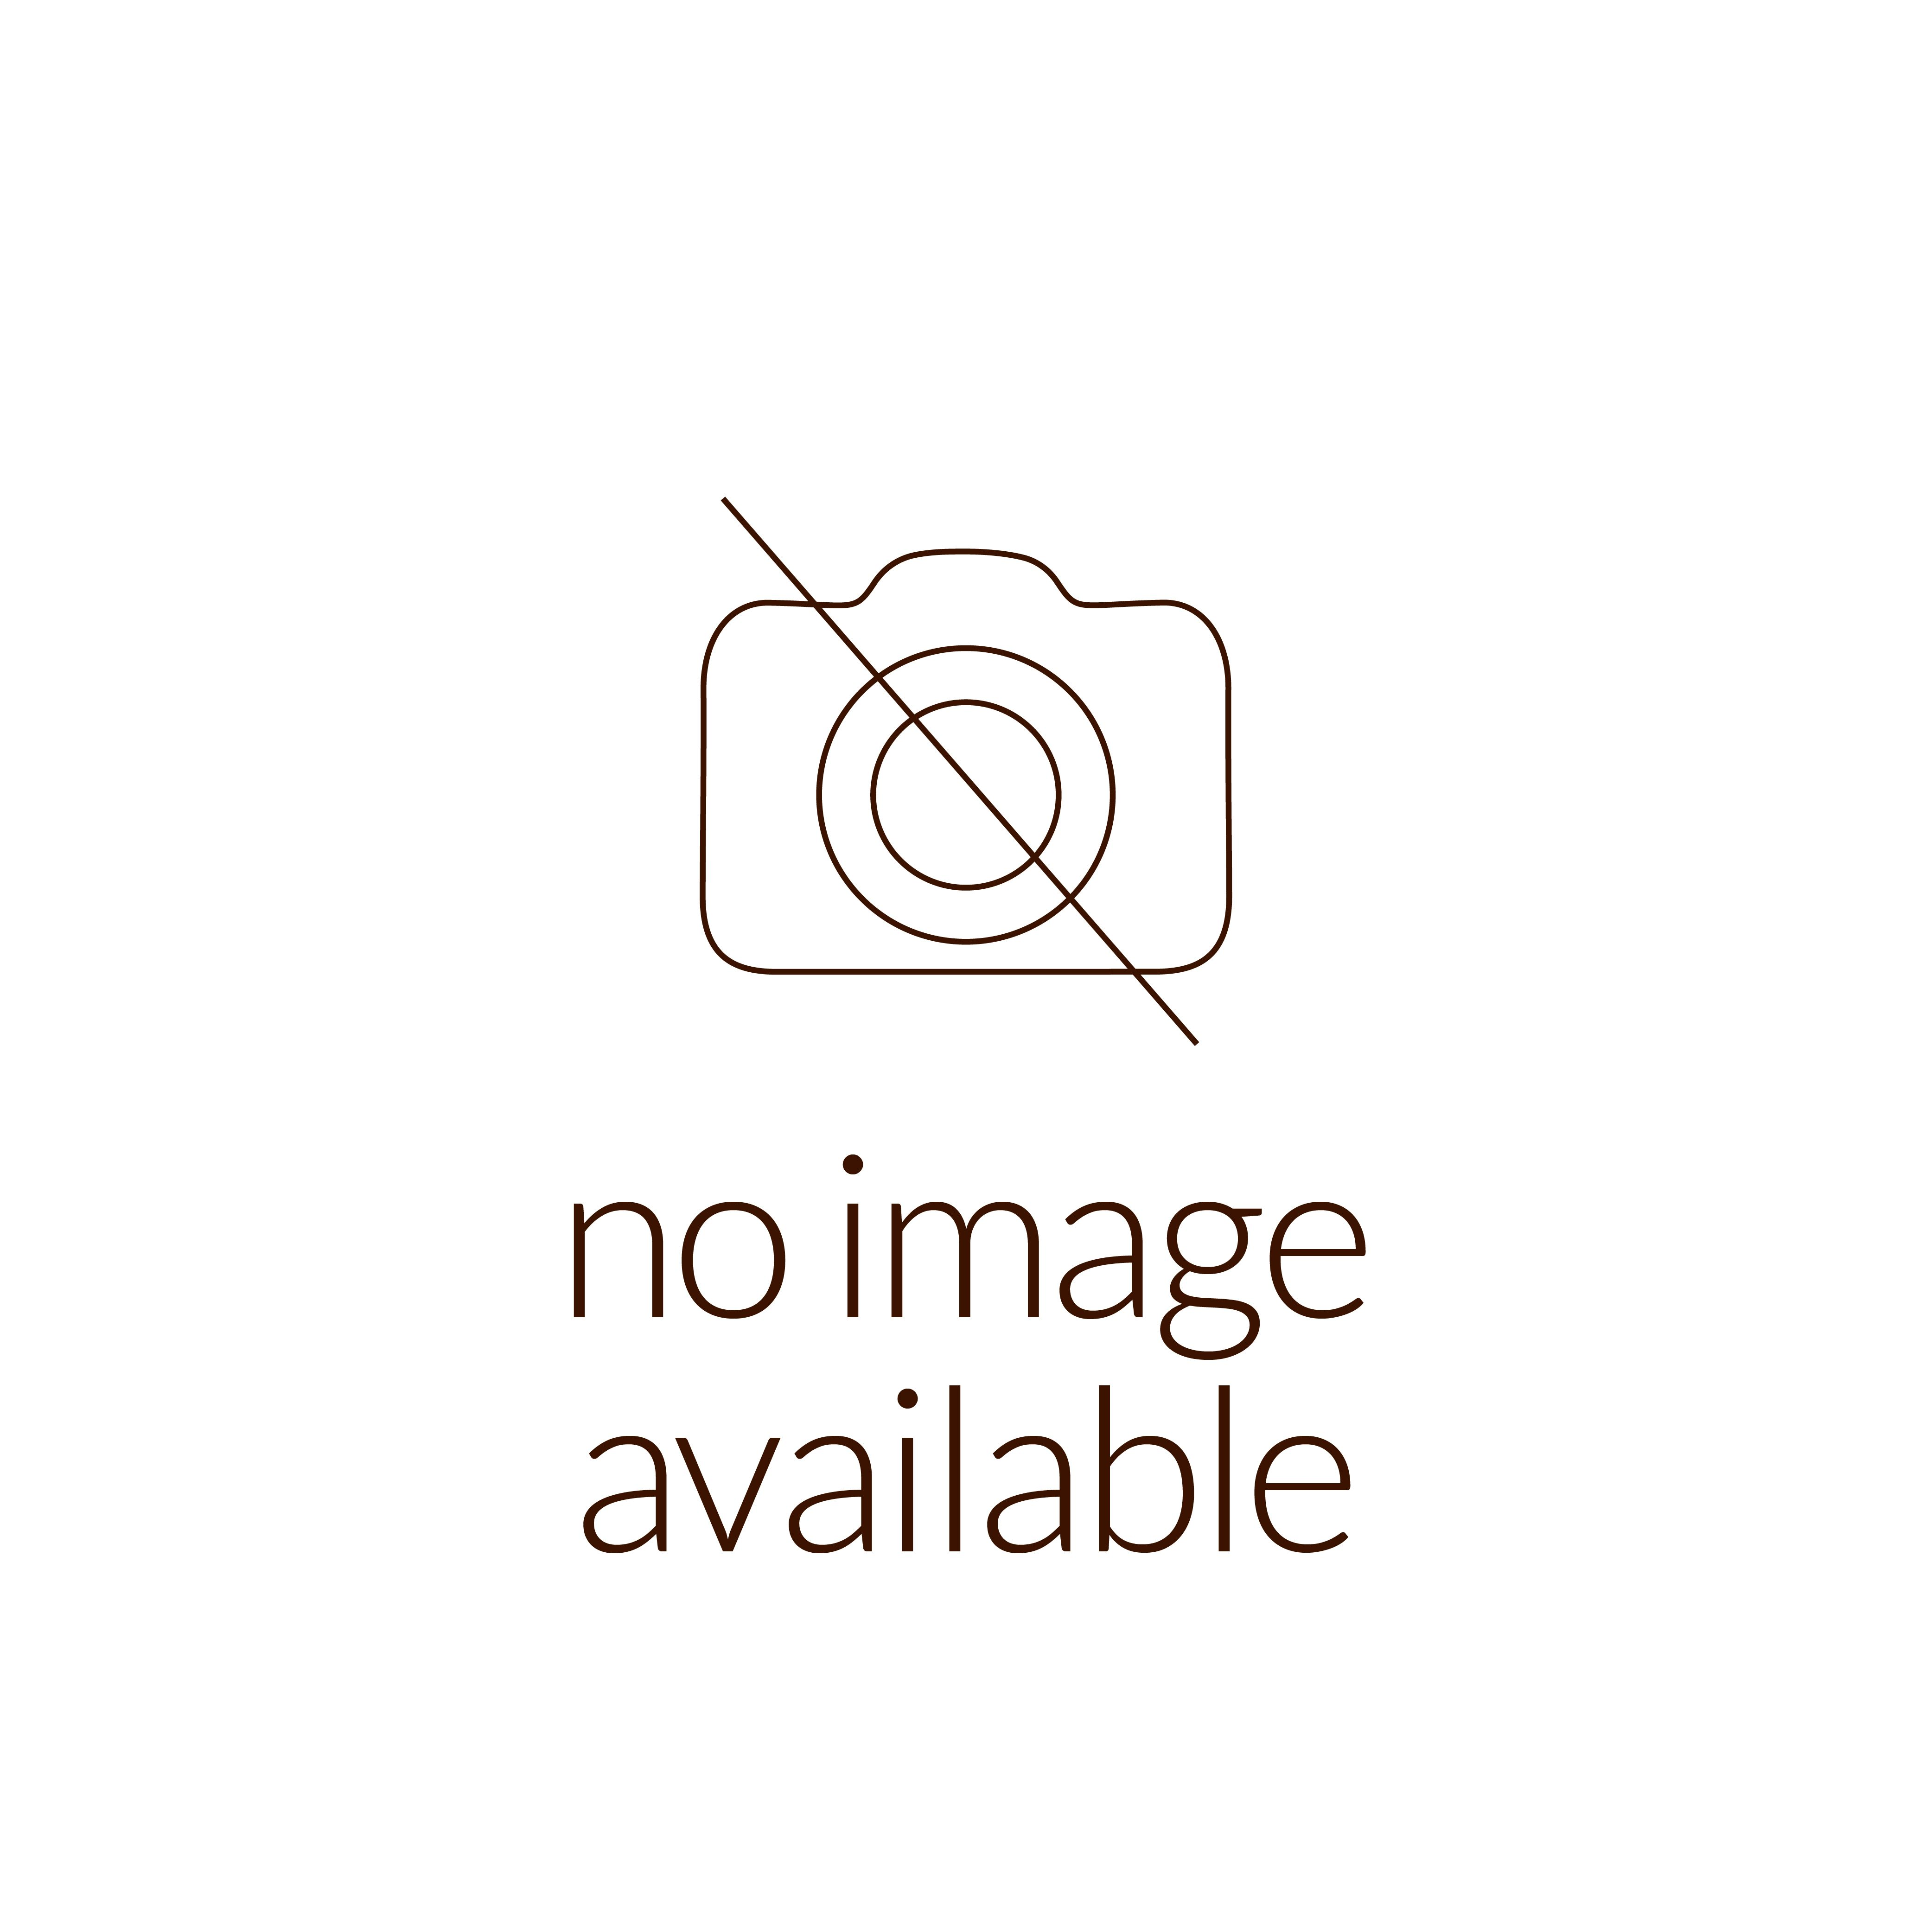 Israeli gifts, JAFFA – TEL AVIV – ON THE STEPS